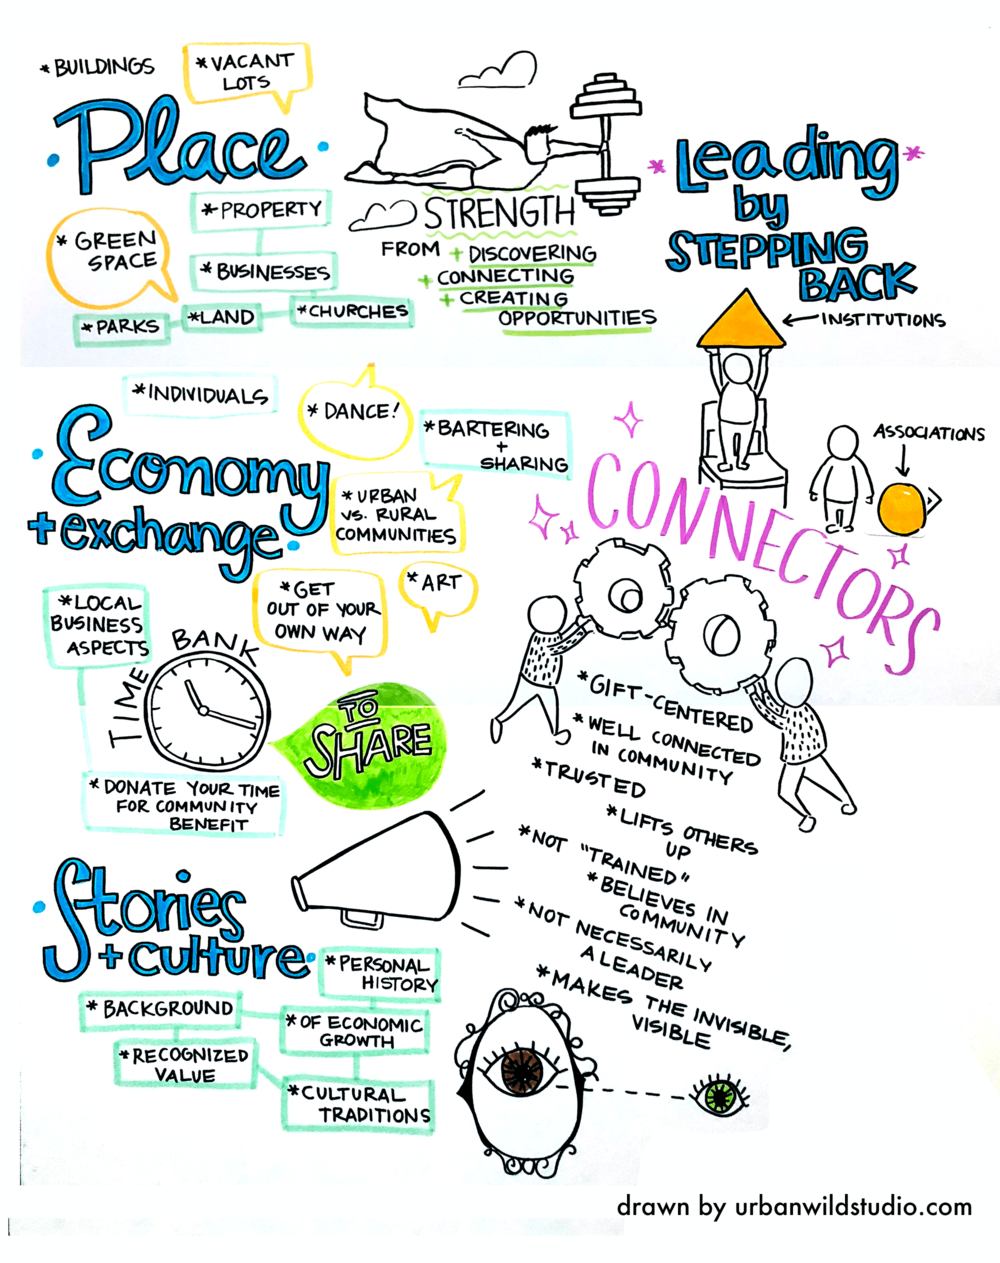 Graphic Recording Community Change 3 Urban Wild Studio